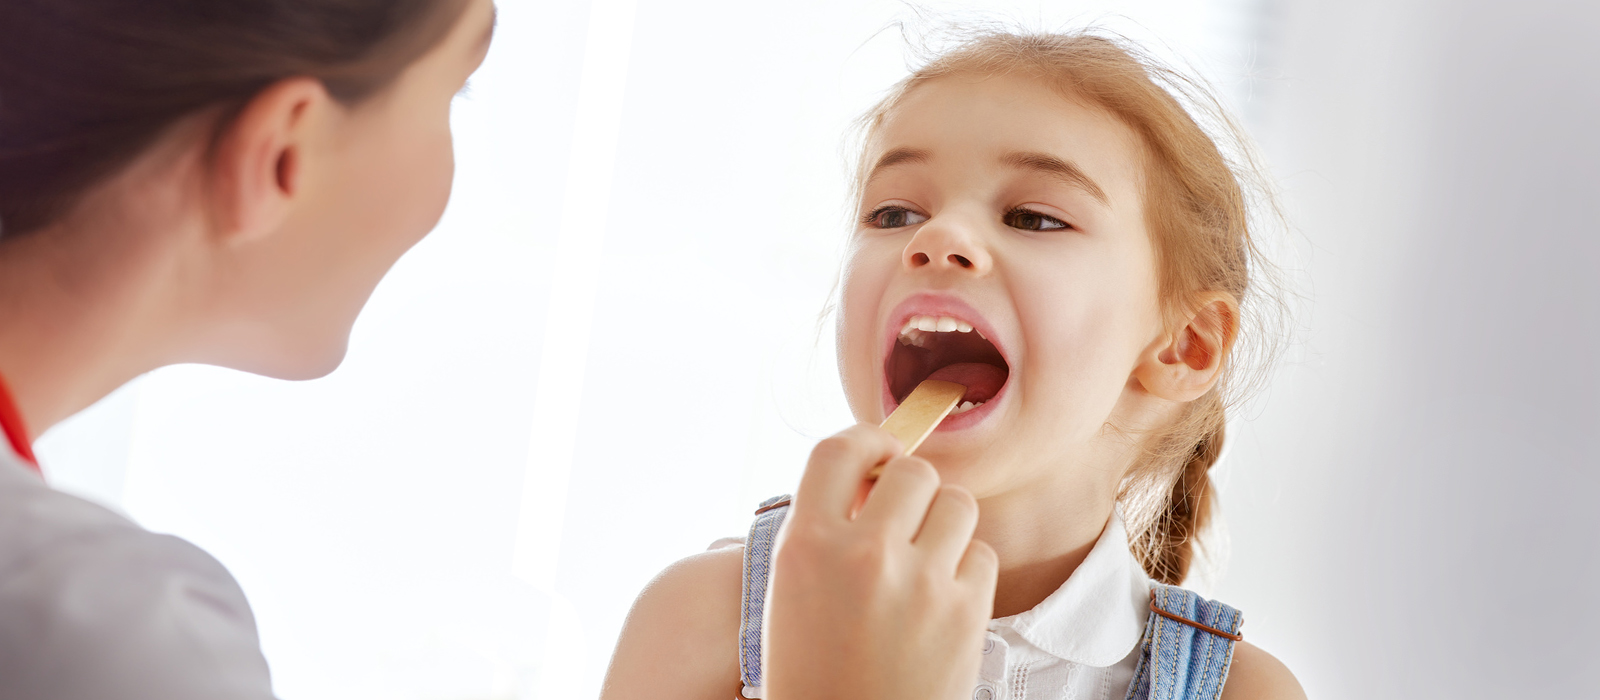 Everything You Need to Know About Strep Throat and How to Treat It